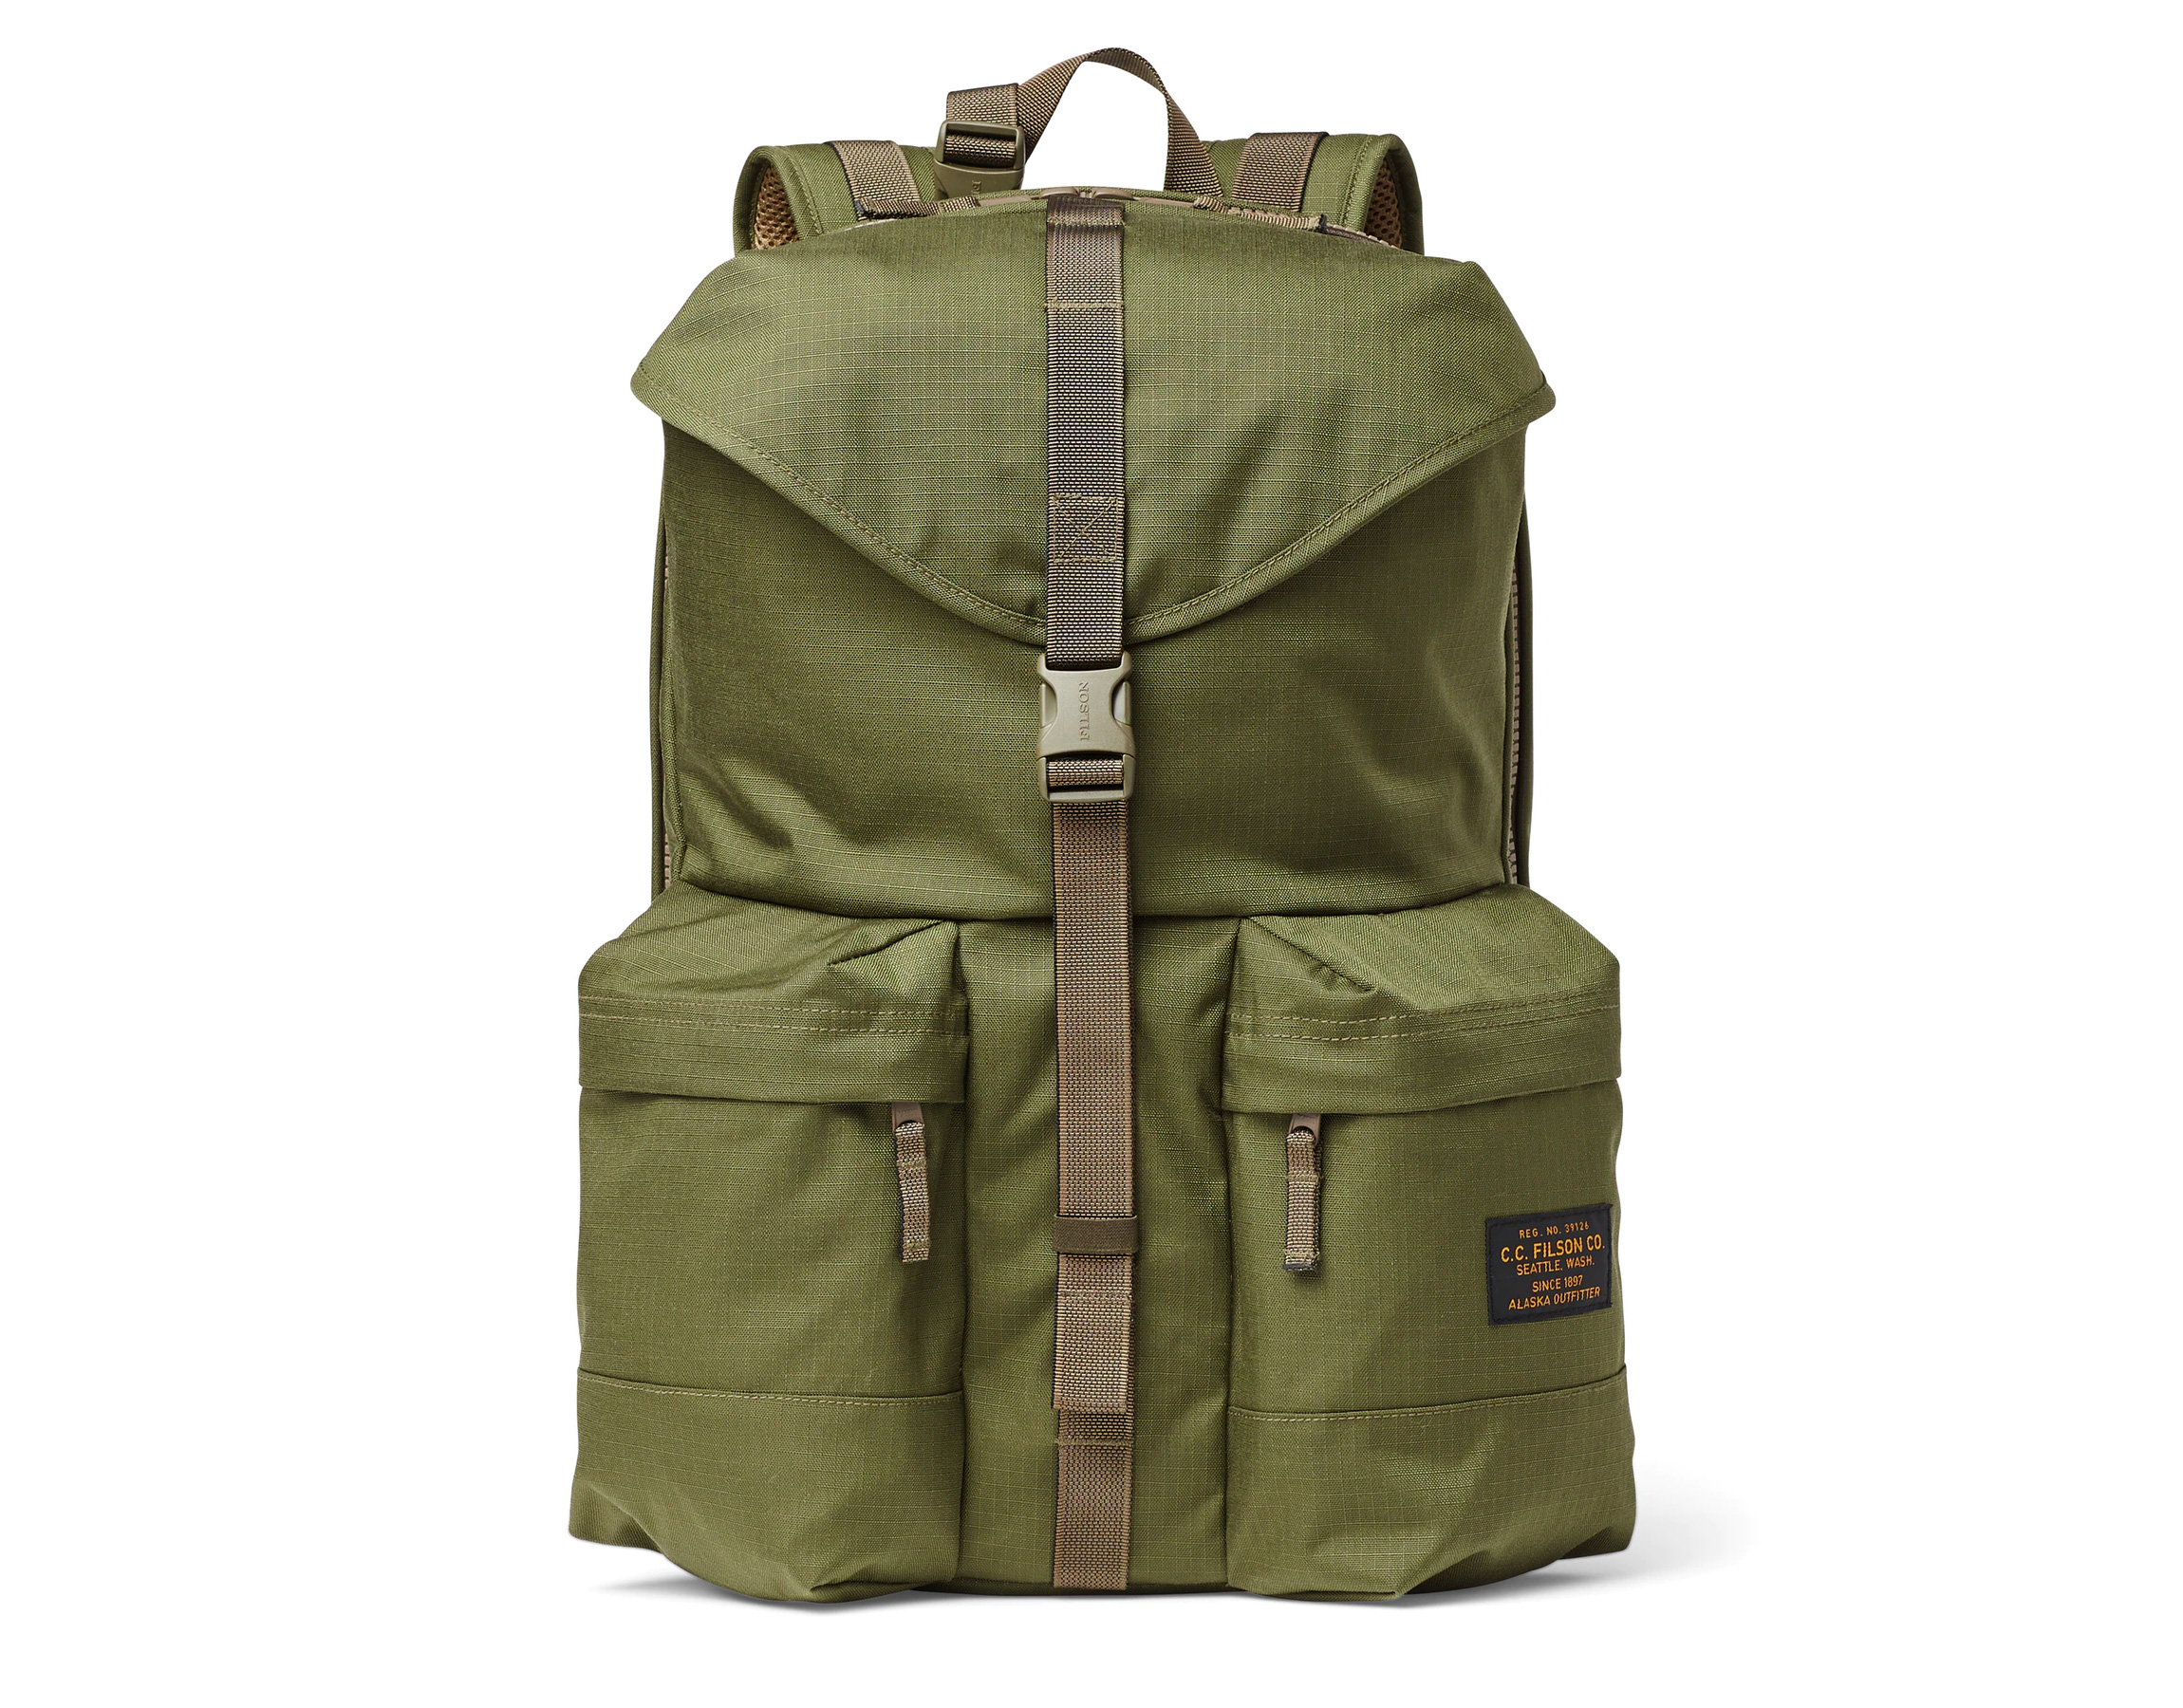 Proper Carry: Filson's Ripstop Nylon Backpack at werd.com